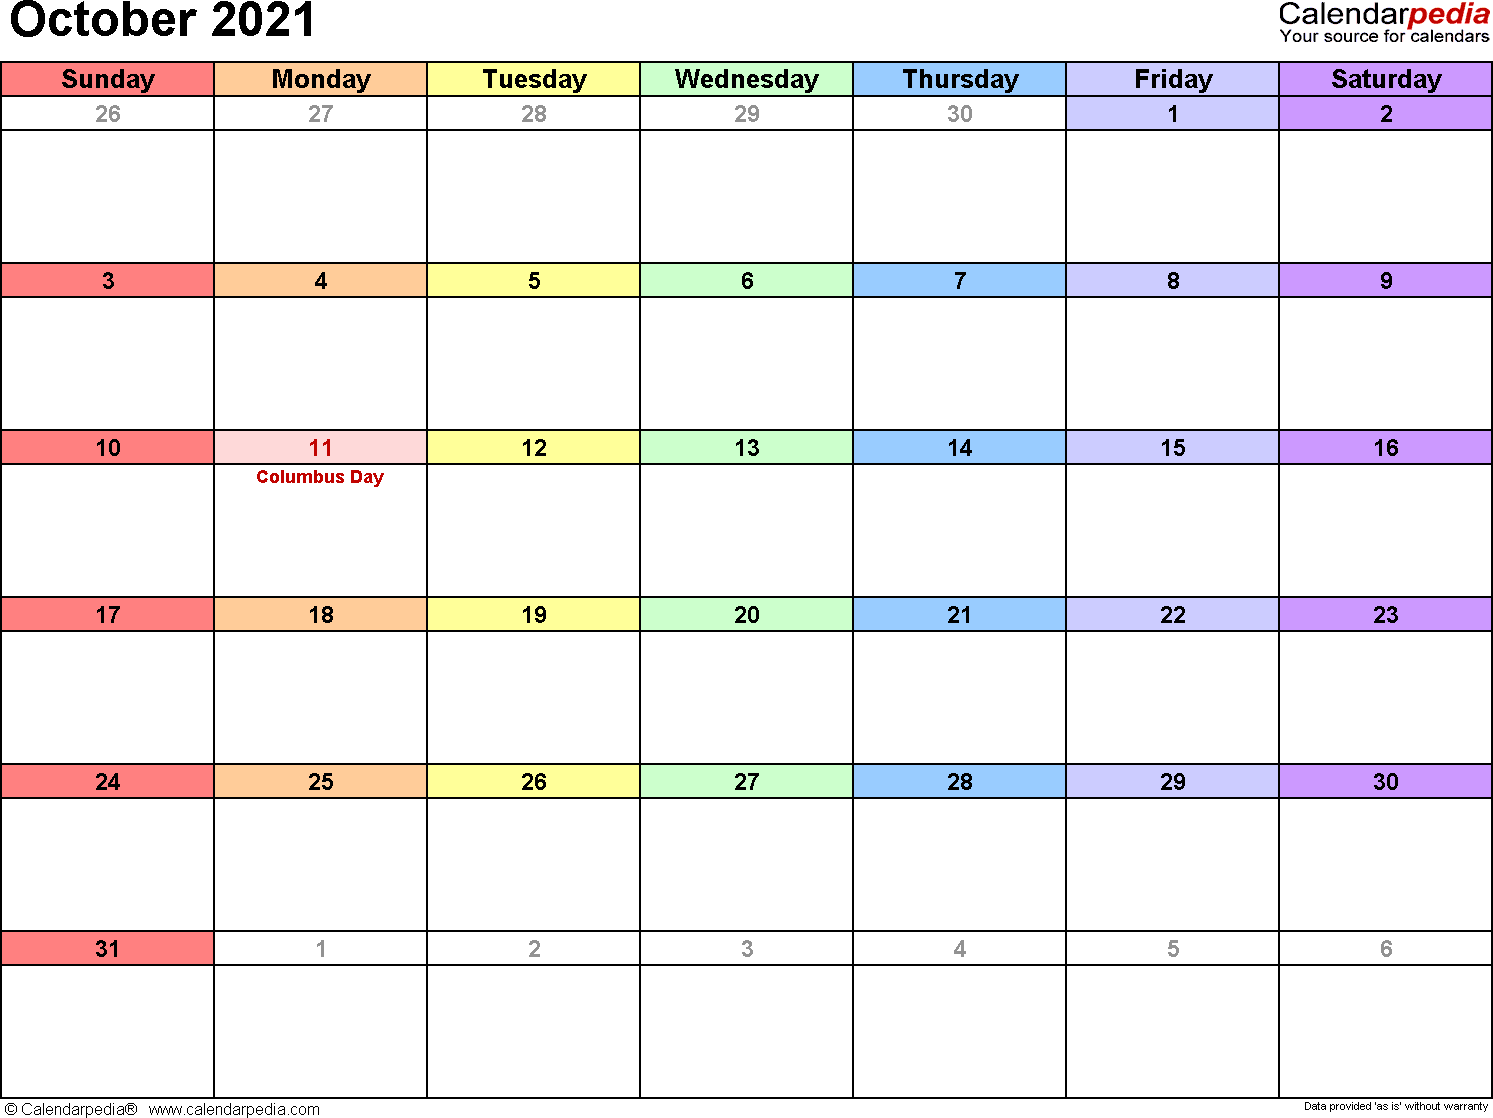 October 2021 - calendar templates for Word, Excel and PDF